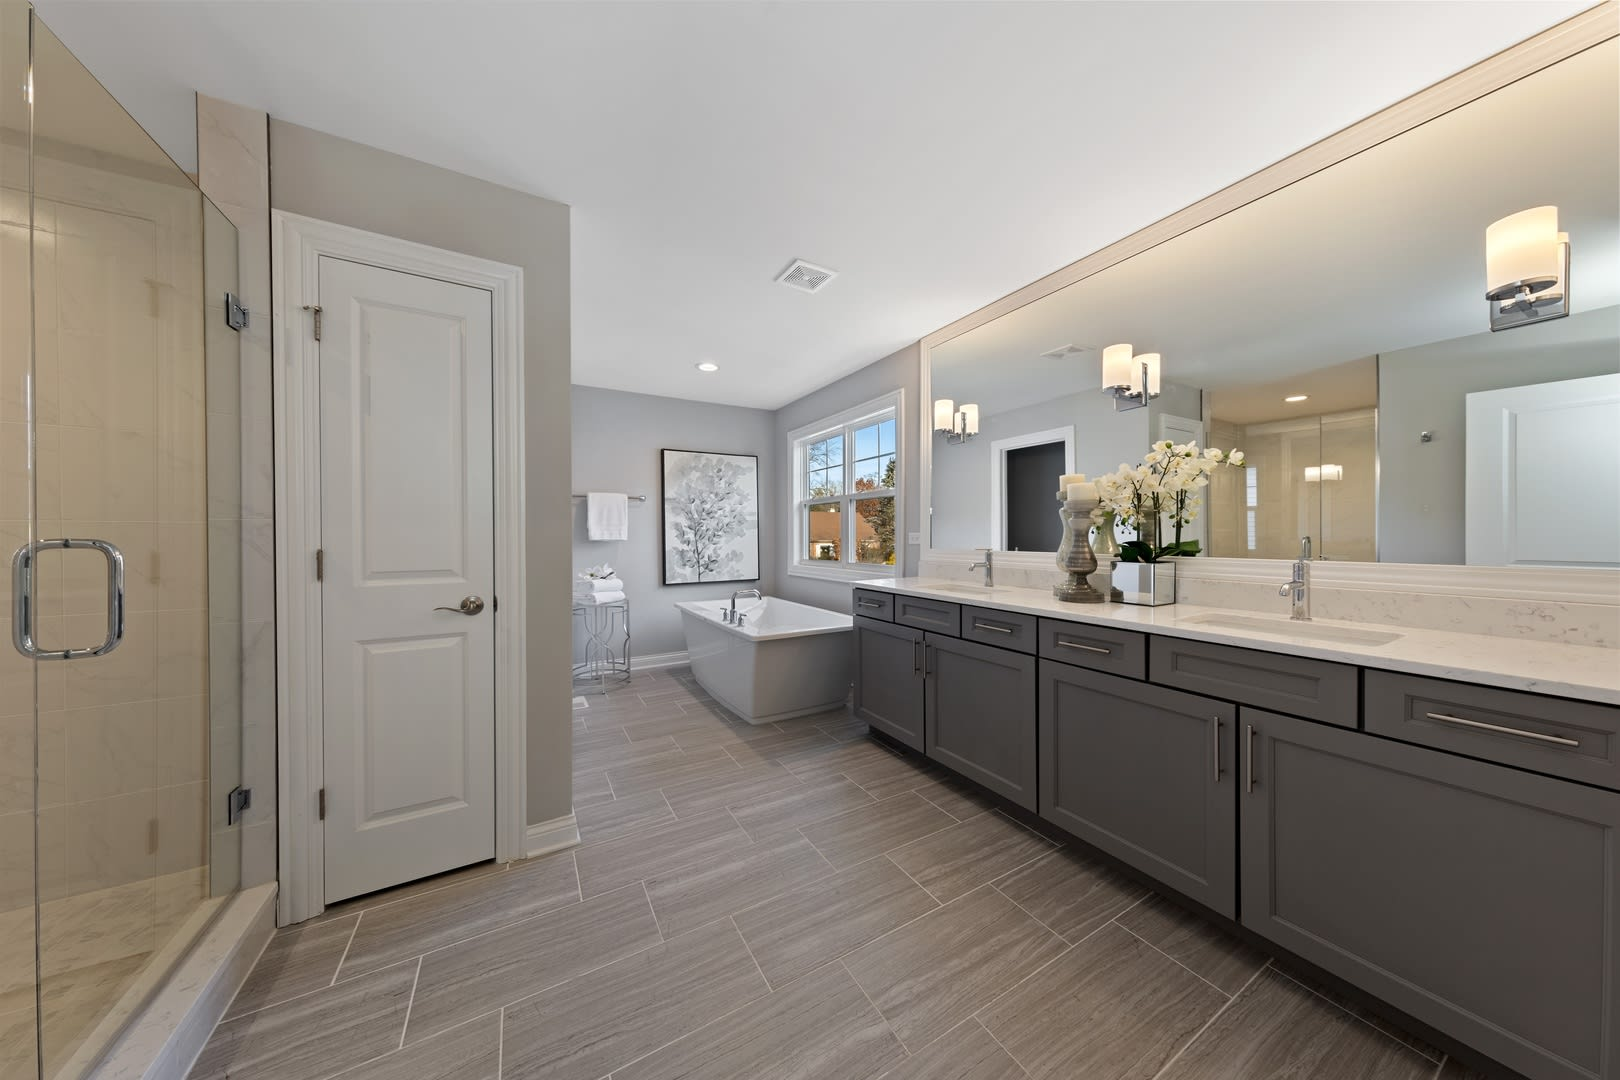 This new construction home is perfection